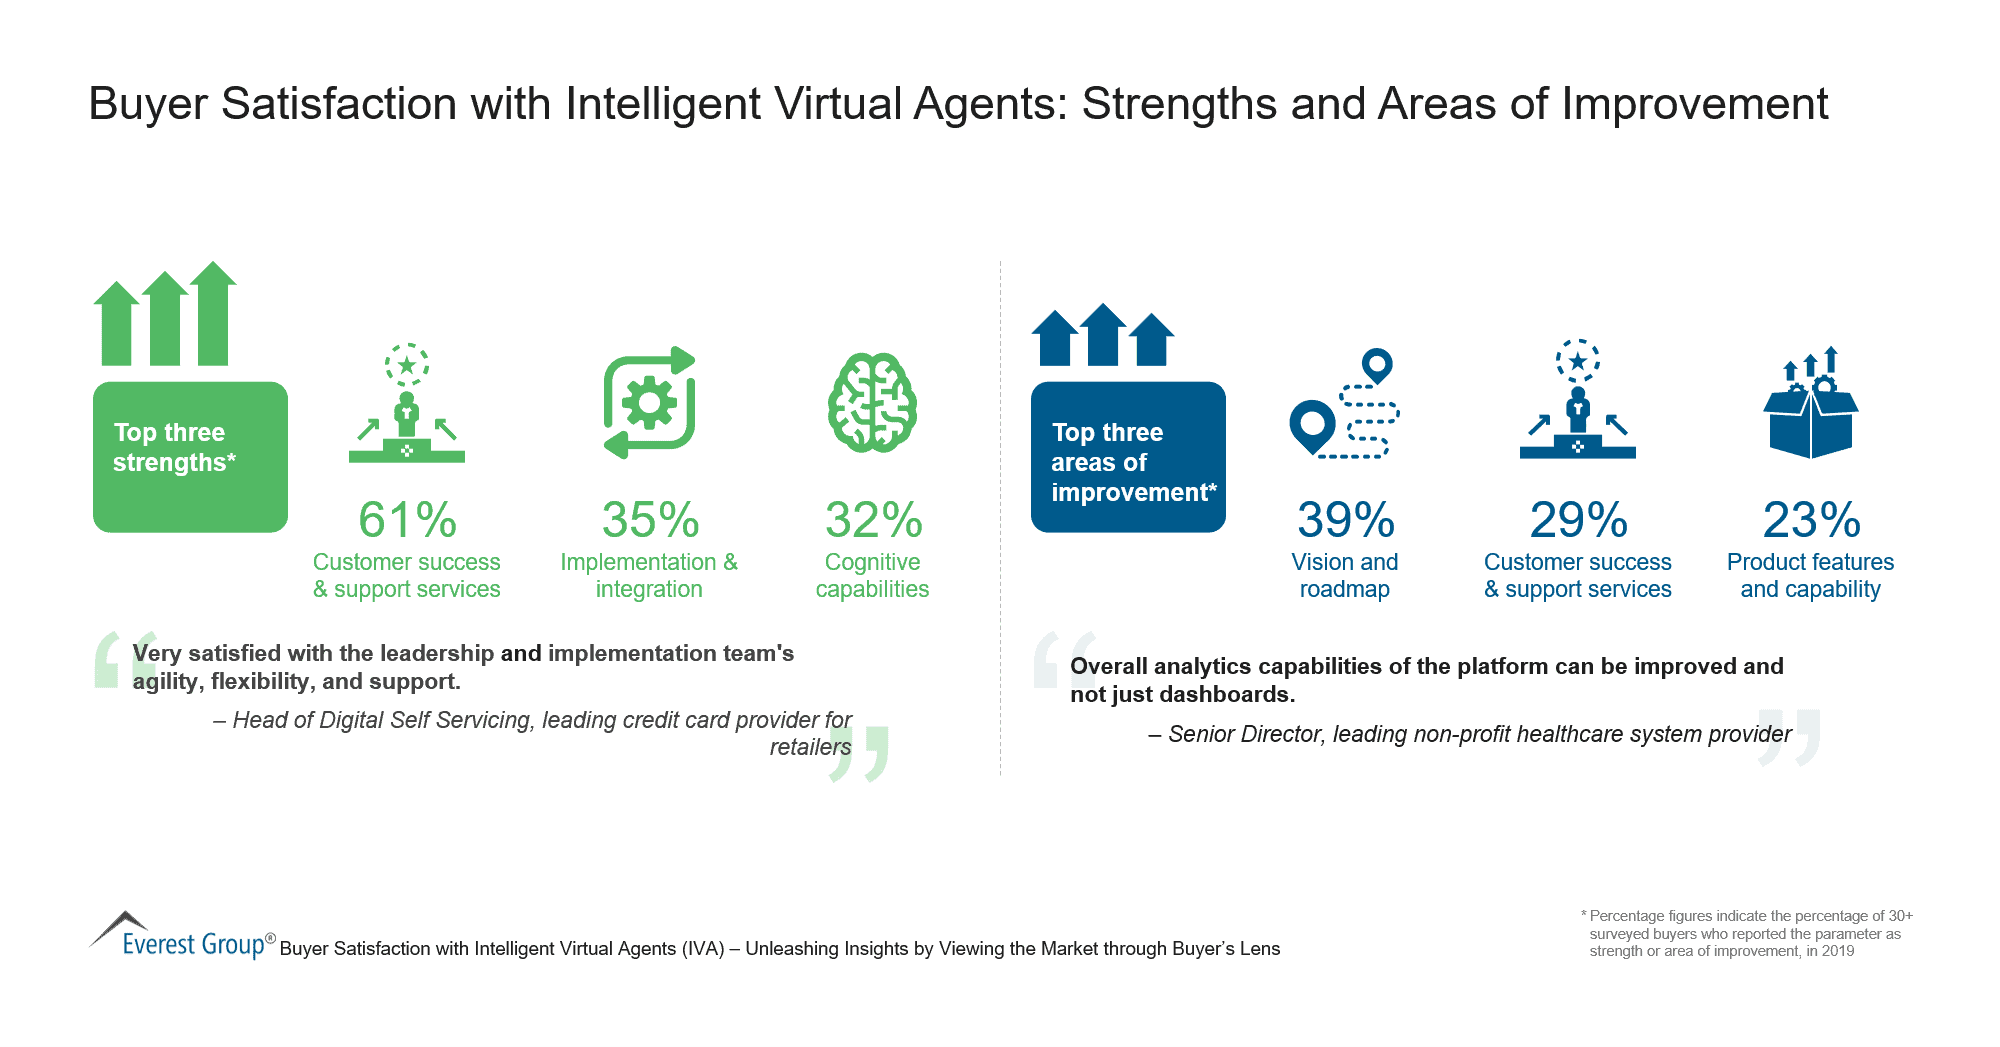 Buyer Satisfaction with Intelligent Virtual Agents - Strengths and Areas of Improvement